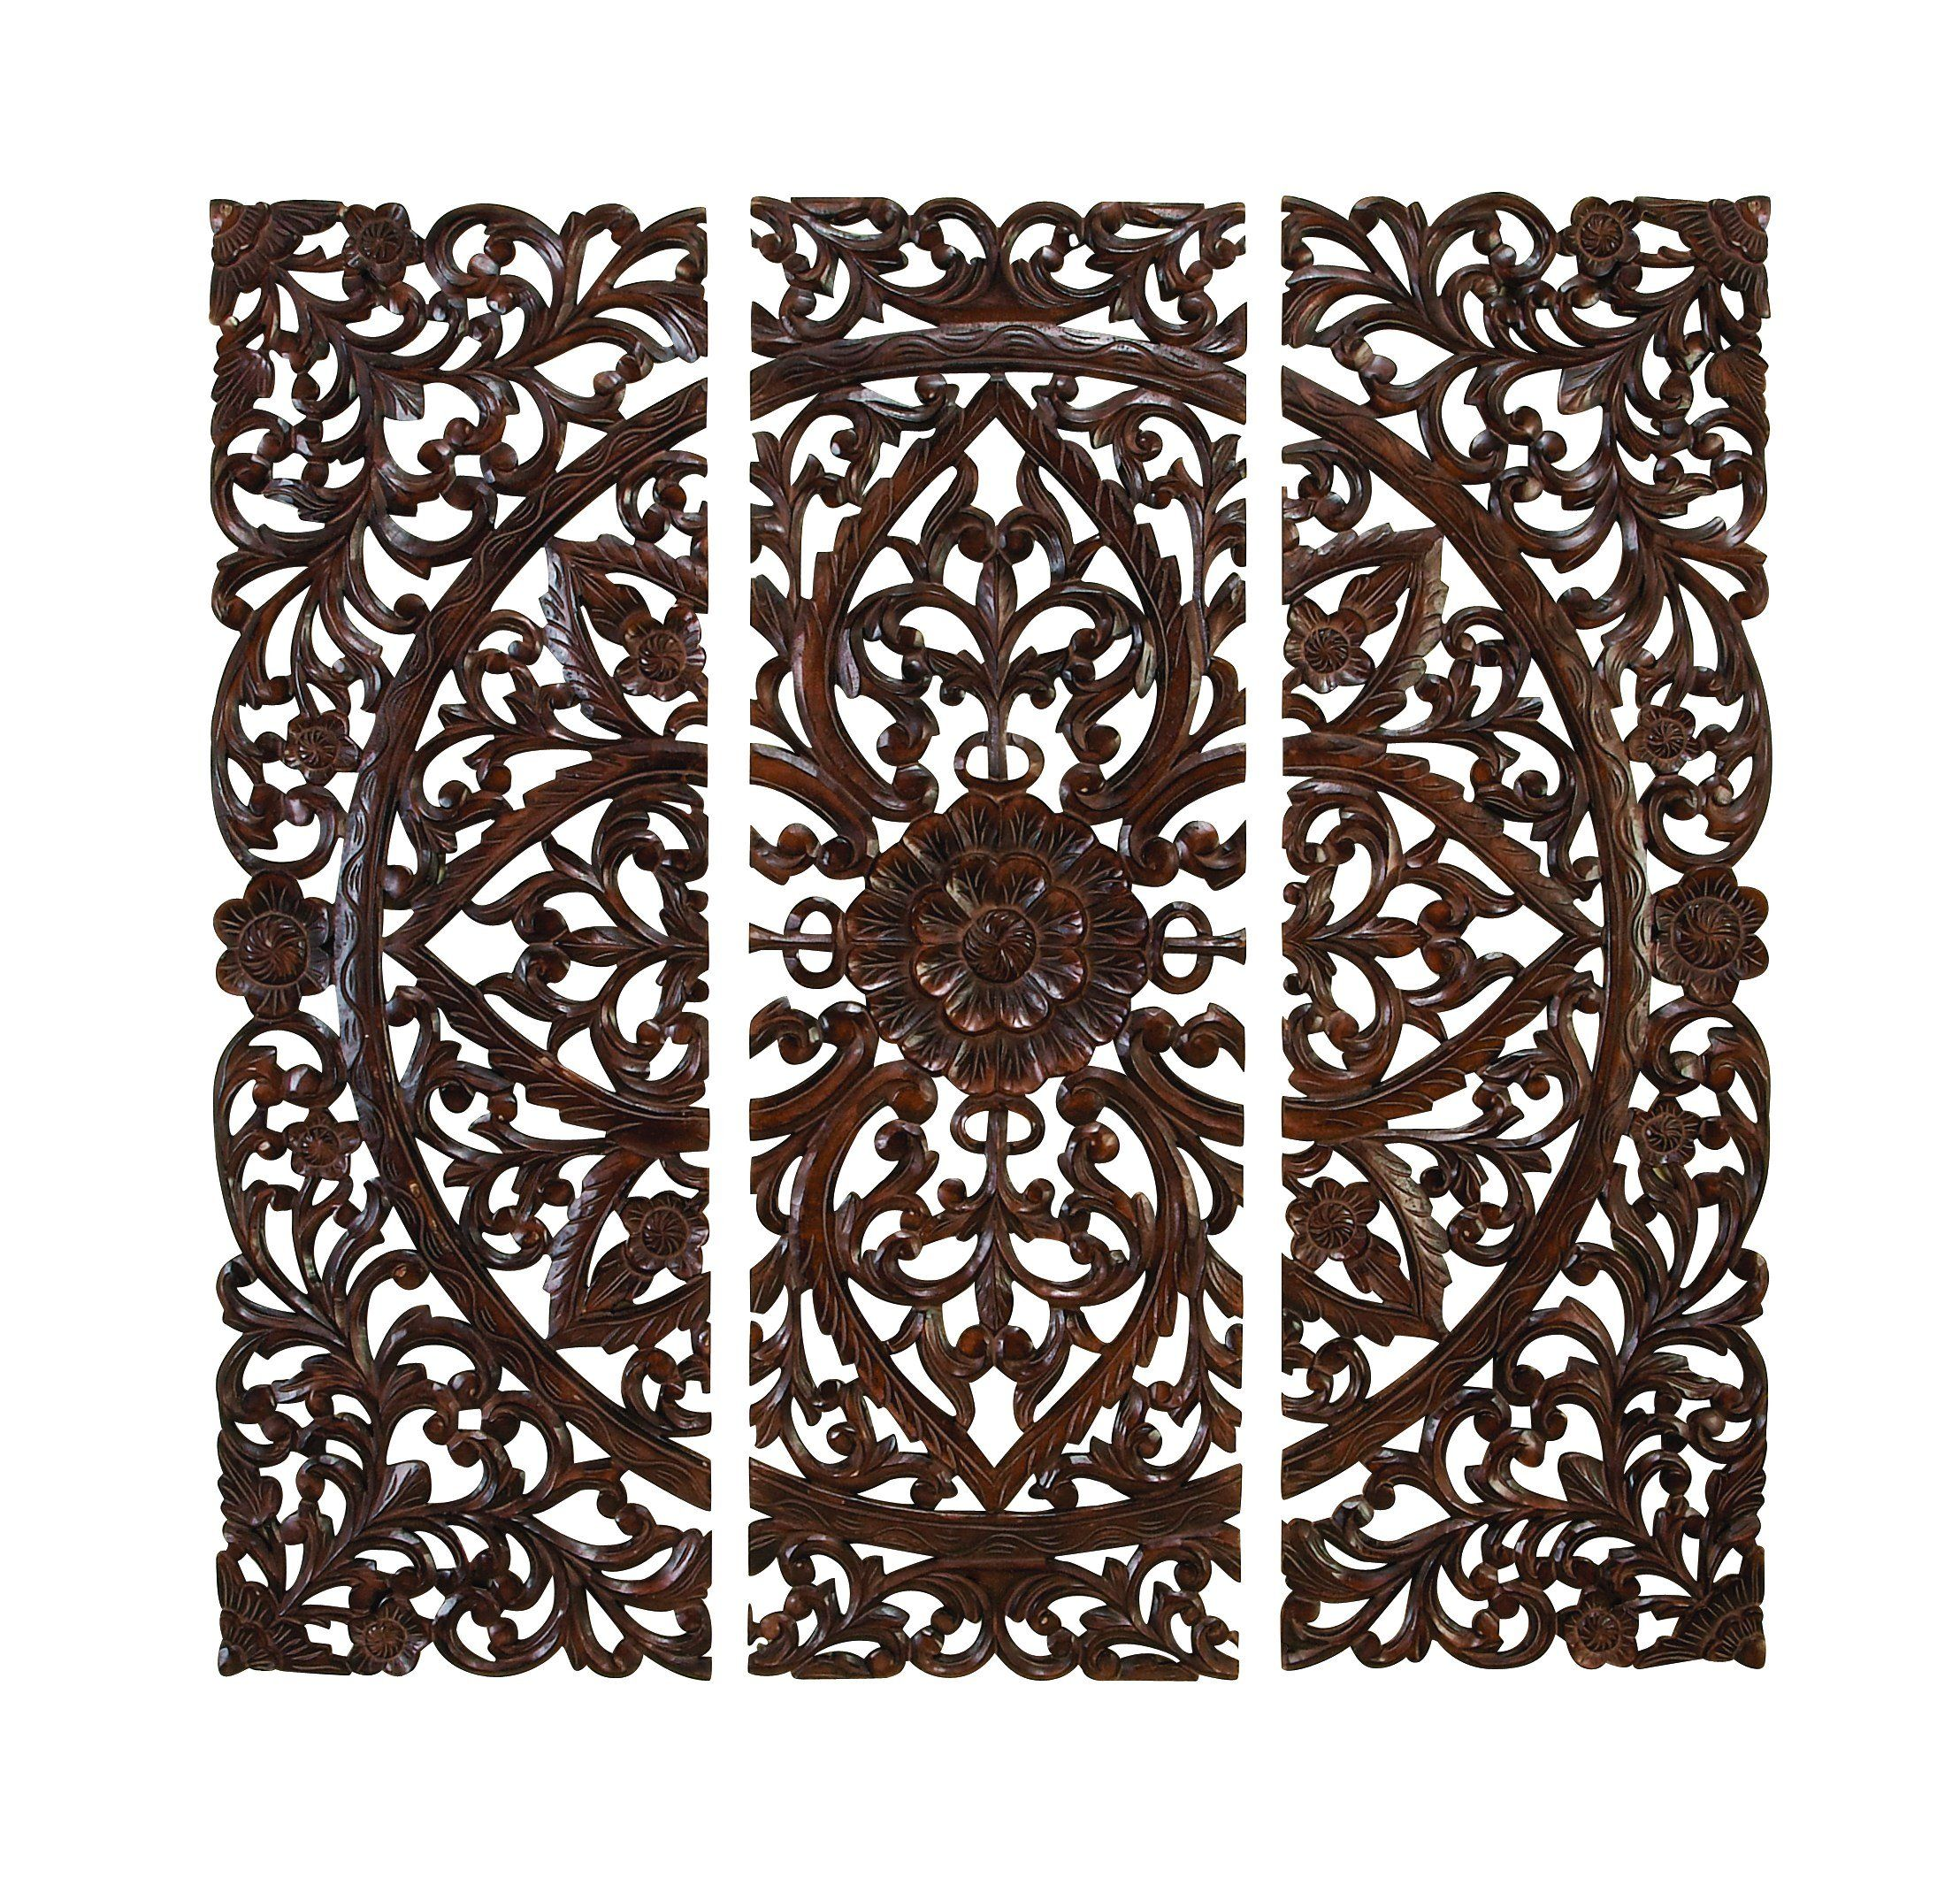 Amazoncom Elegant Wood Carved Decorative Wall Art Plaque Home &